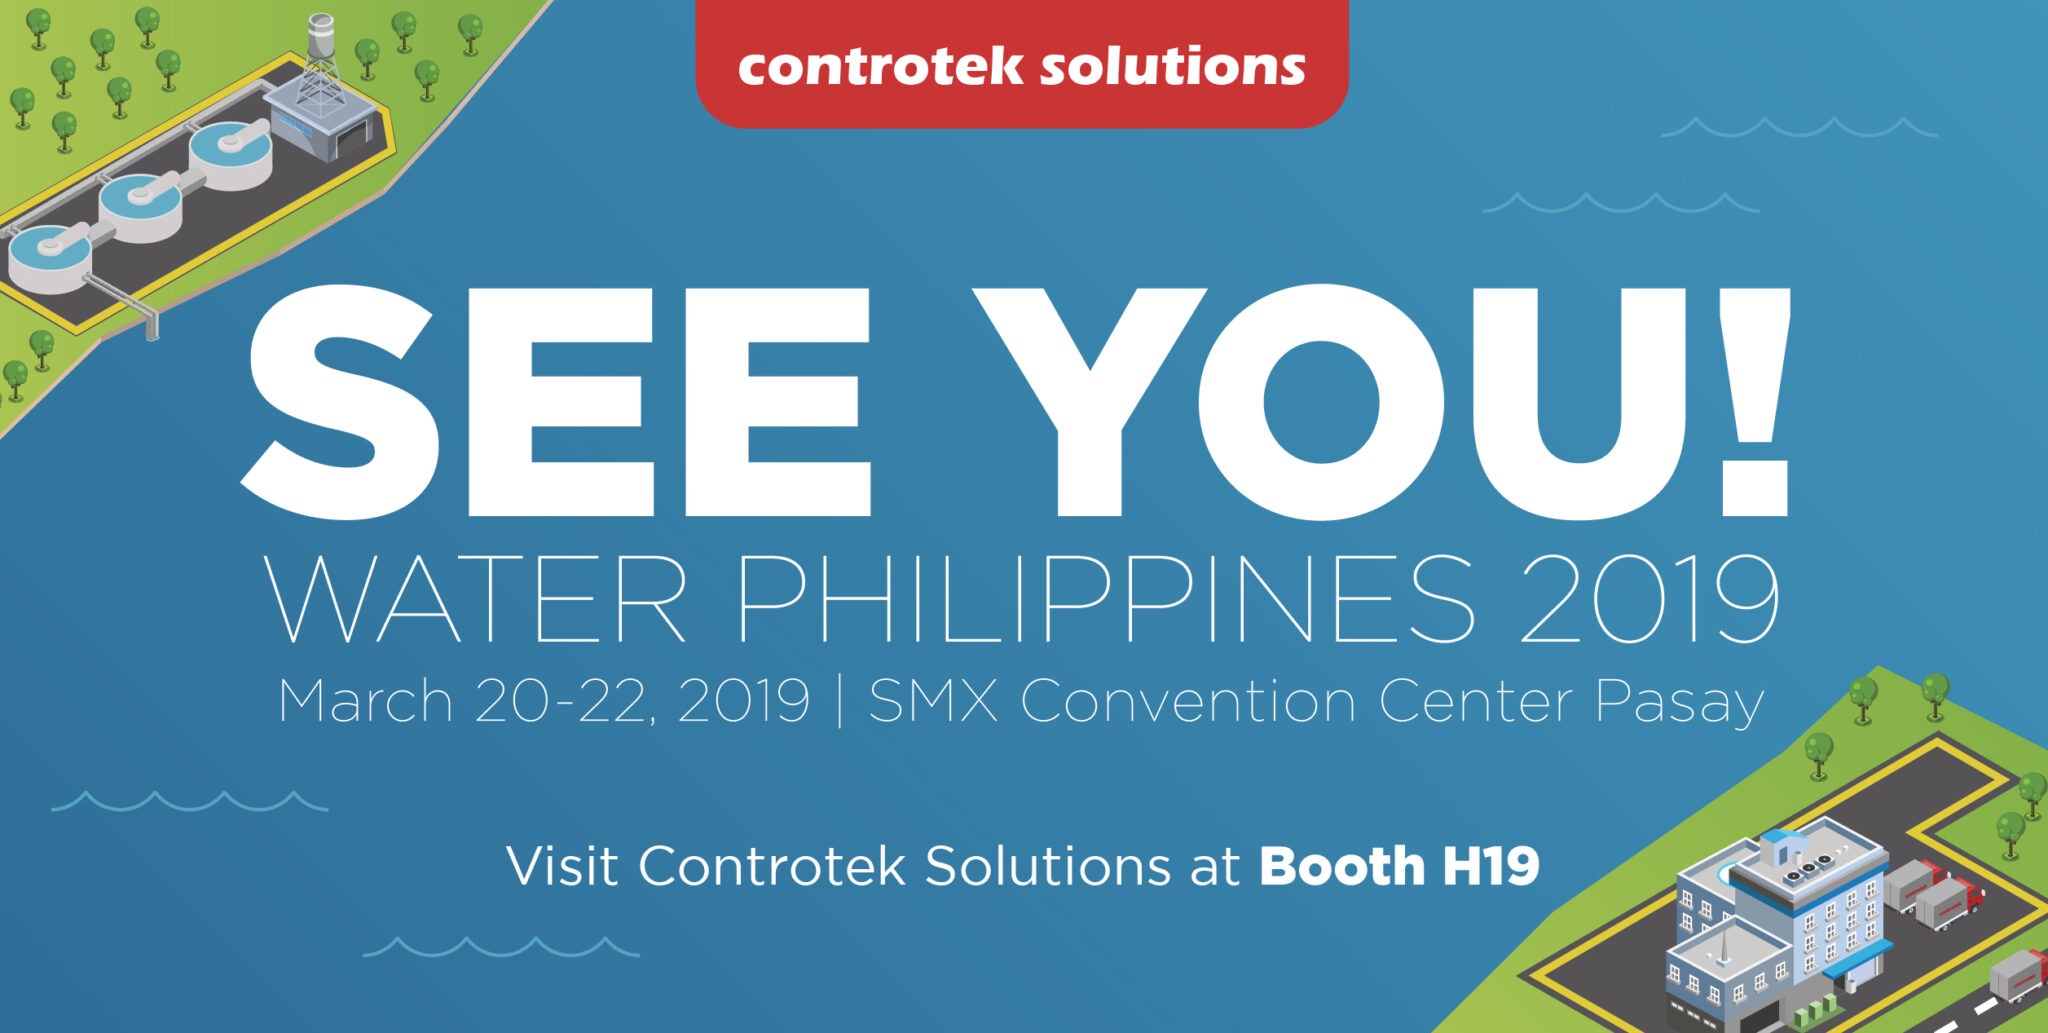 See You at Water Philippines 2019 - Get Your Free Pass Here!